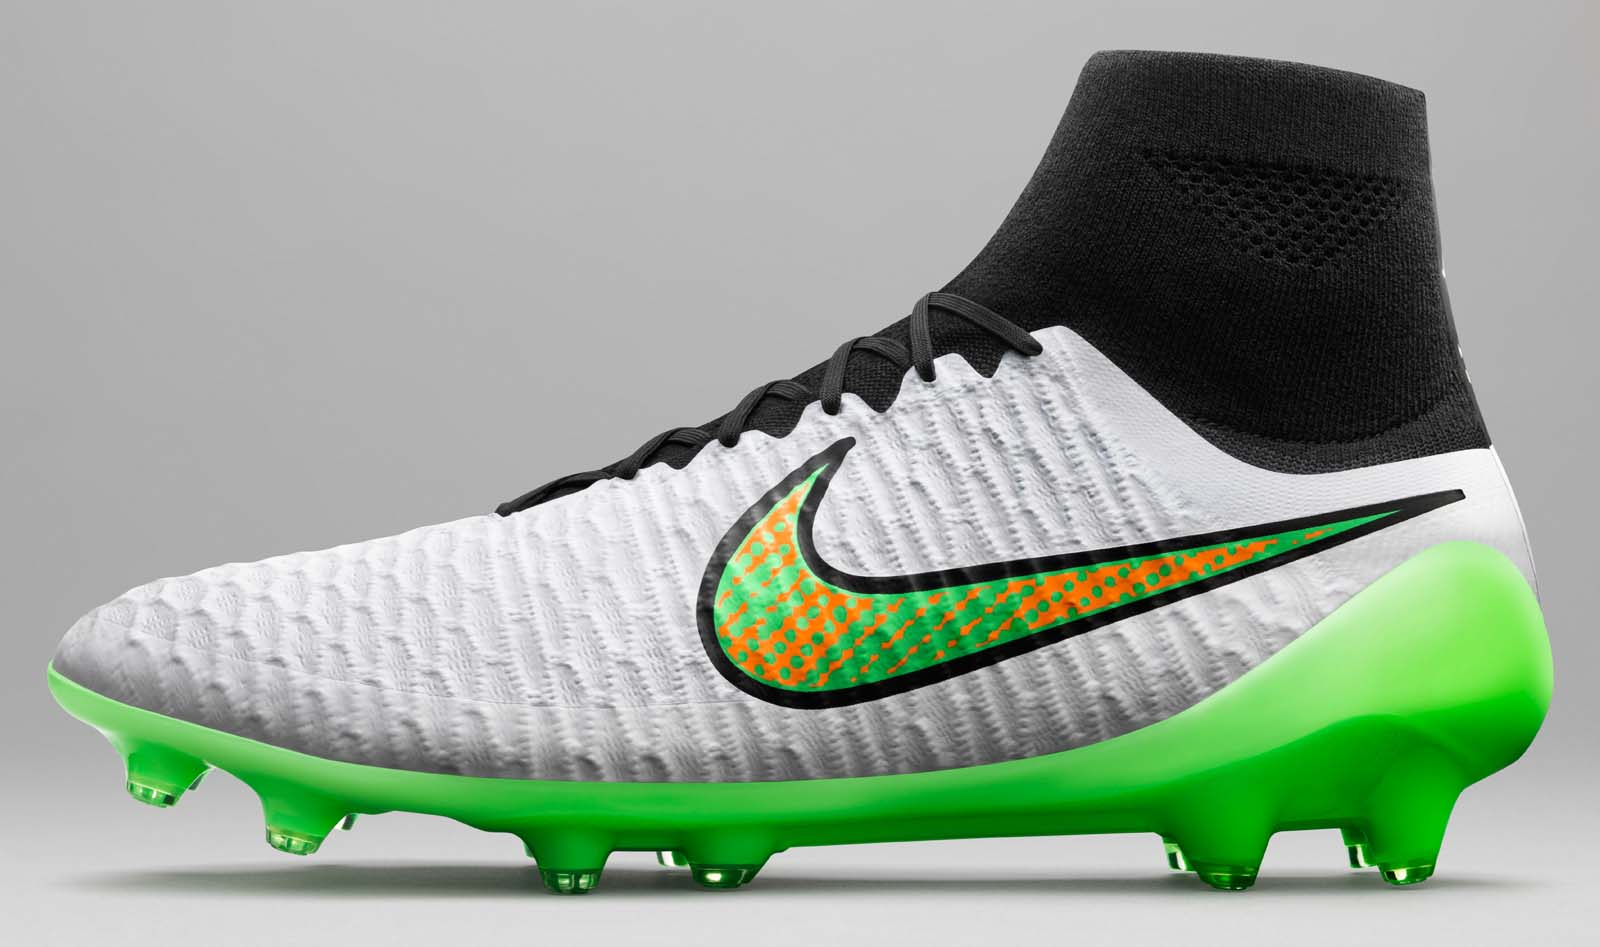 Nike White 2015 Football Boots Pack Shine Through